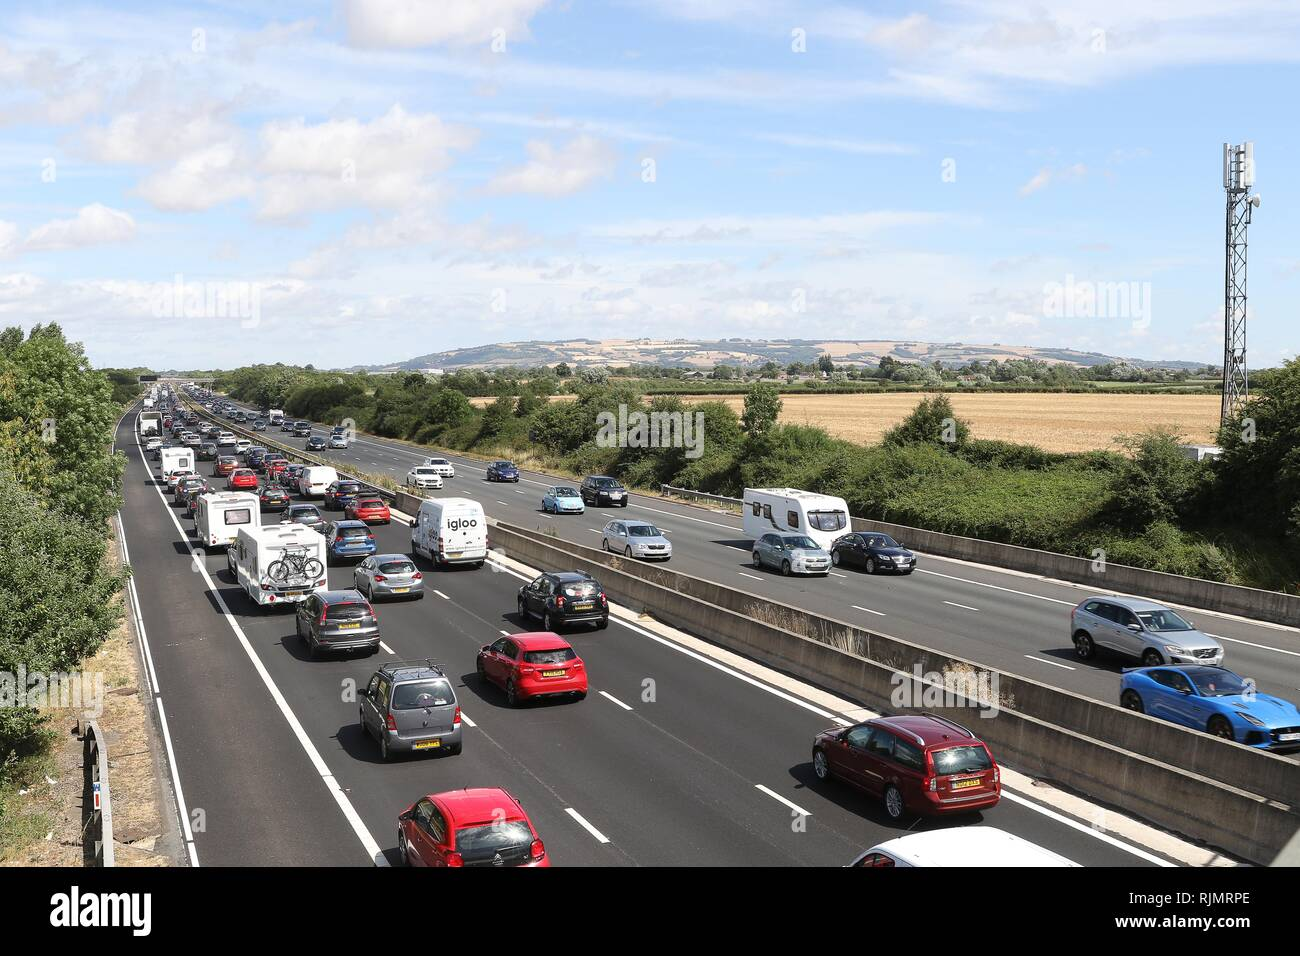 GV of M5 Motorway between Cheltenham and Tewkesbury showing holiday traffic delays northbound - 28.7.2018  Picture by Antony Thompson - Thousand Word  - Stock Image